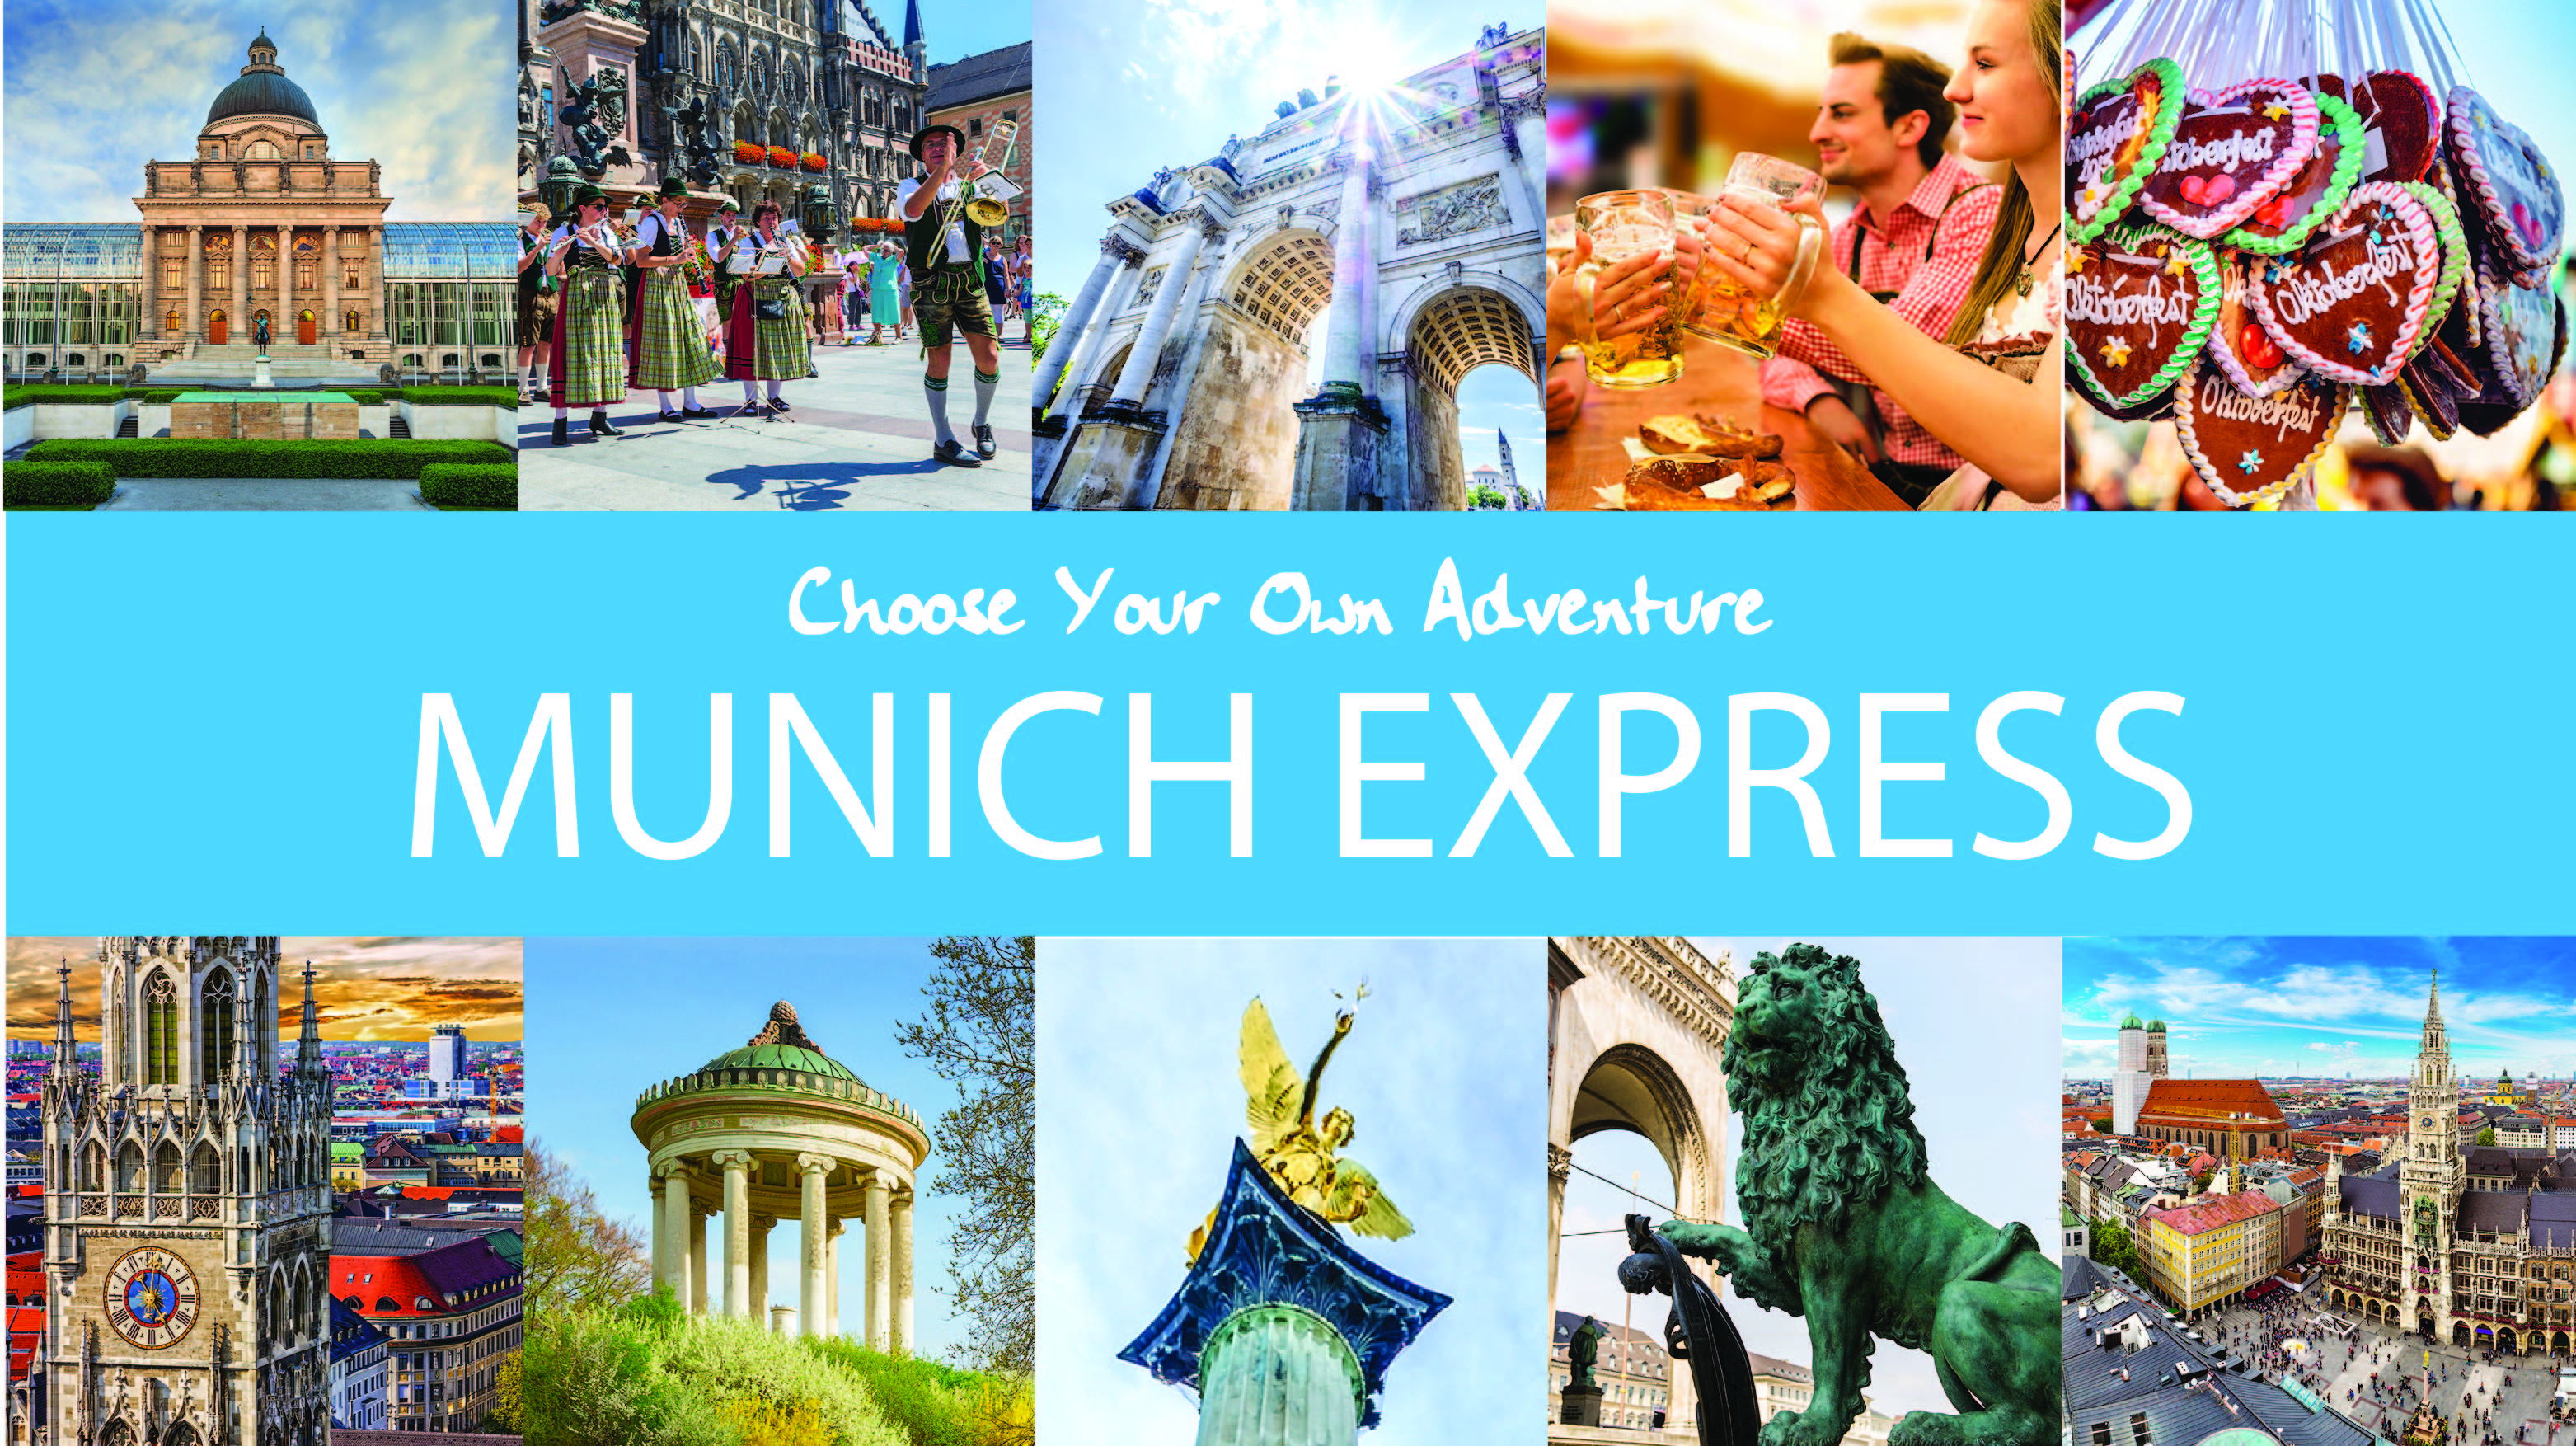 Munich Express